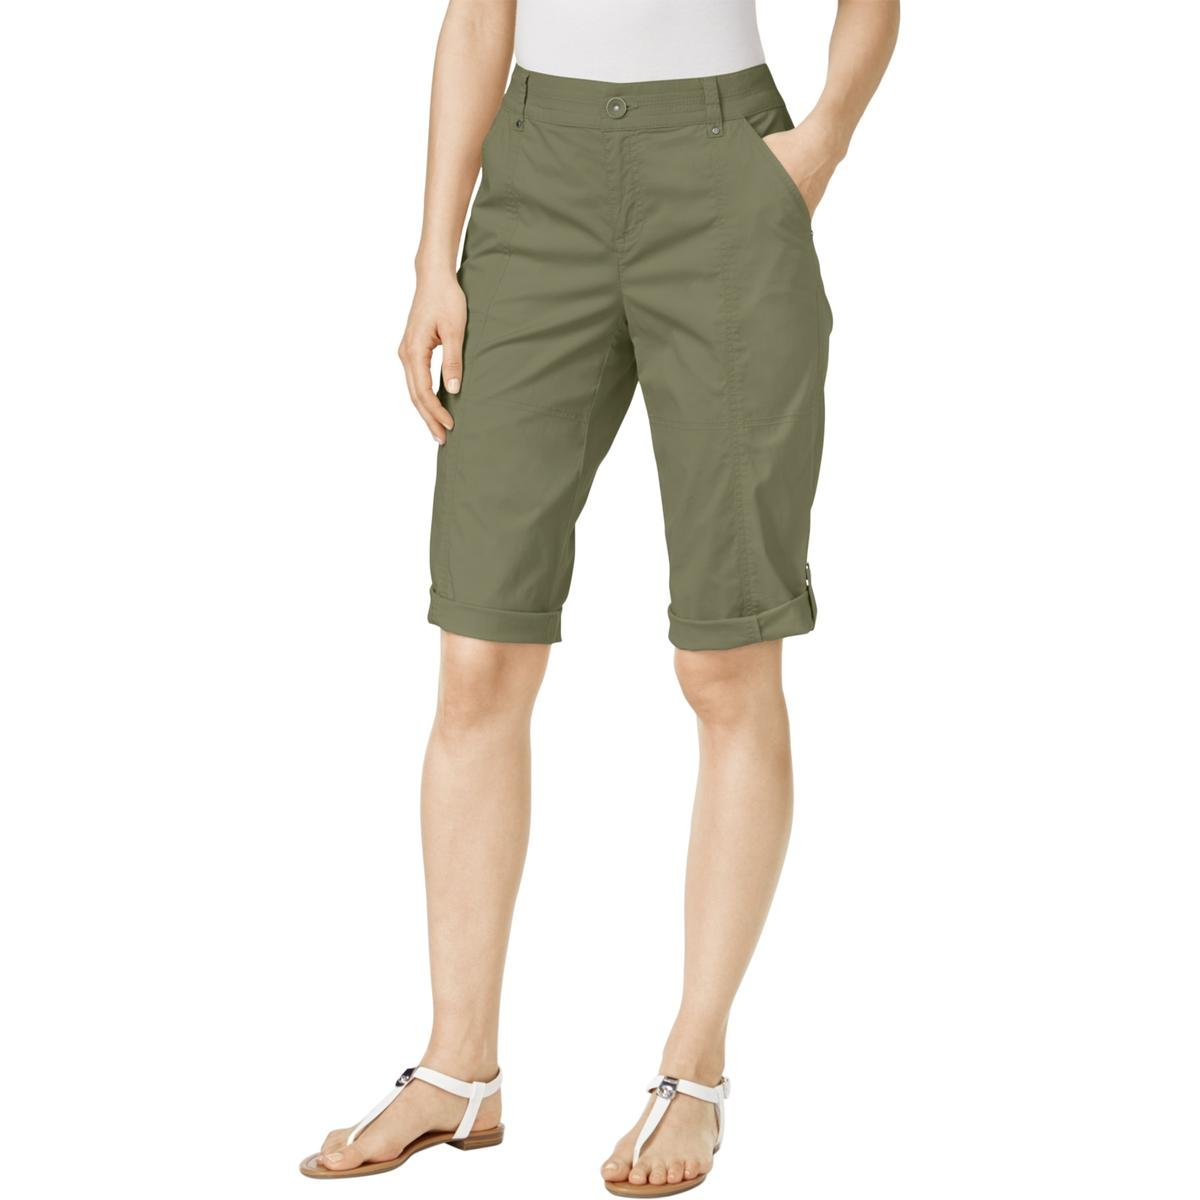 Style & Co.. Womens Petites Twill Cuffed Cargo Shorts Green 6P